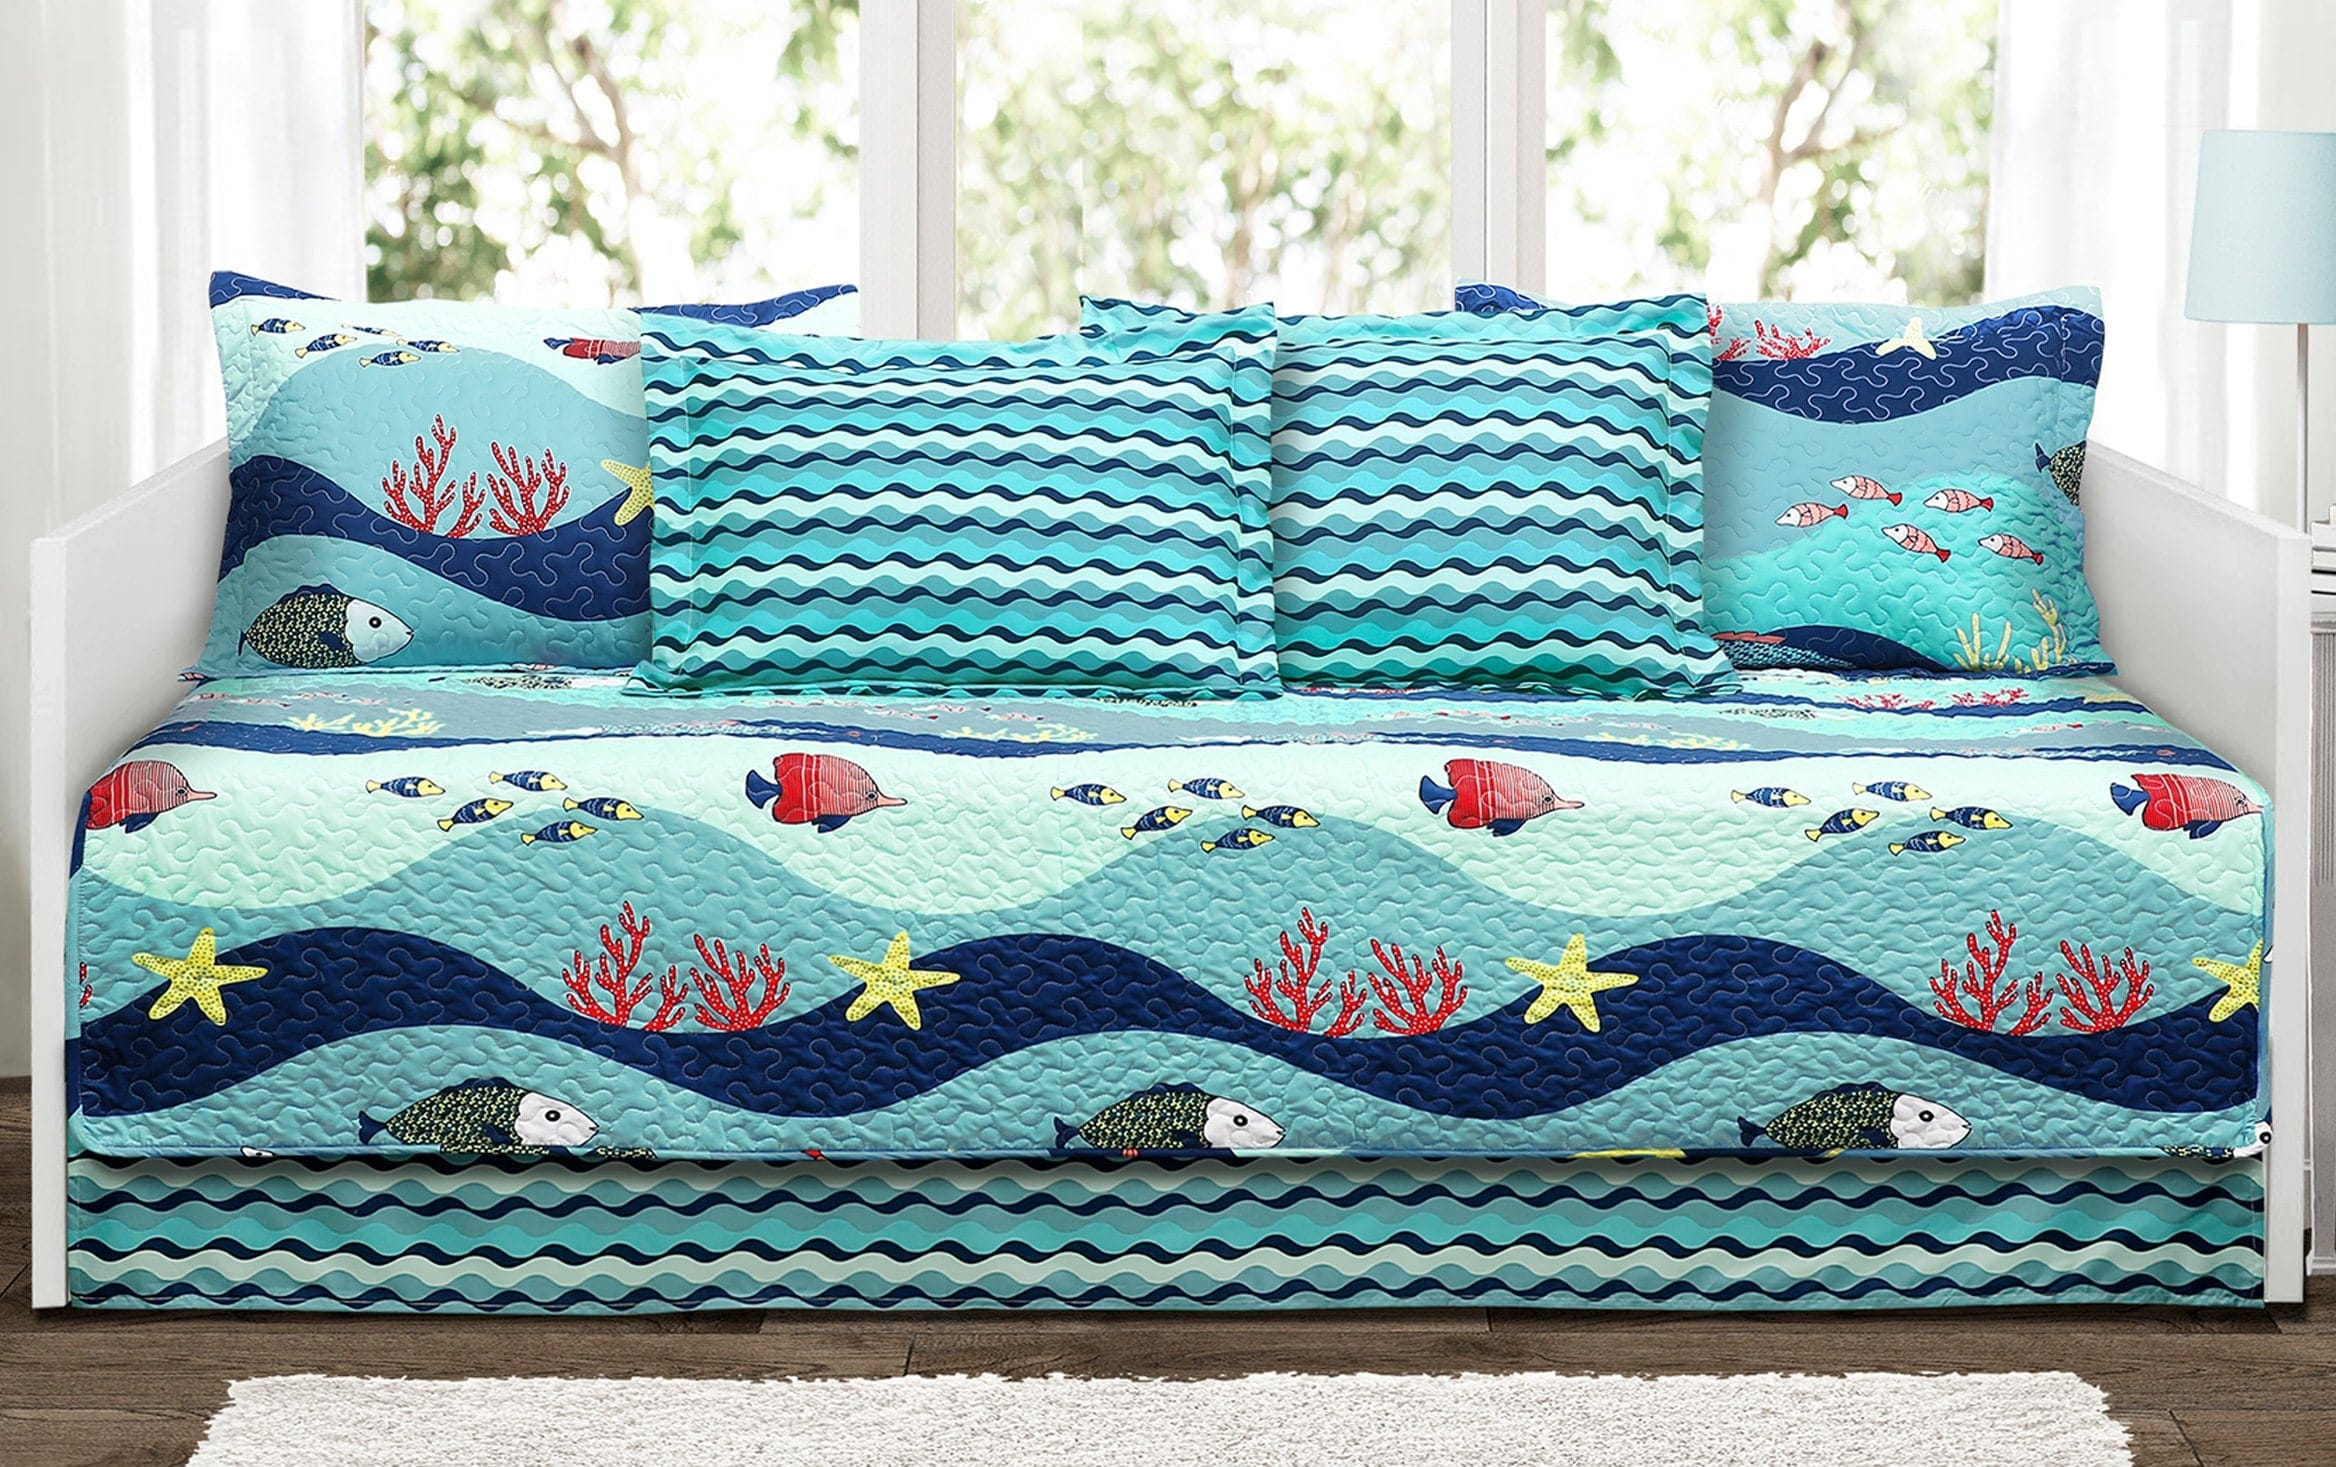 Ocean Life 6 Piece Daybed Cover Set Bobs Com